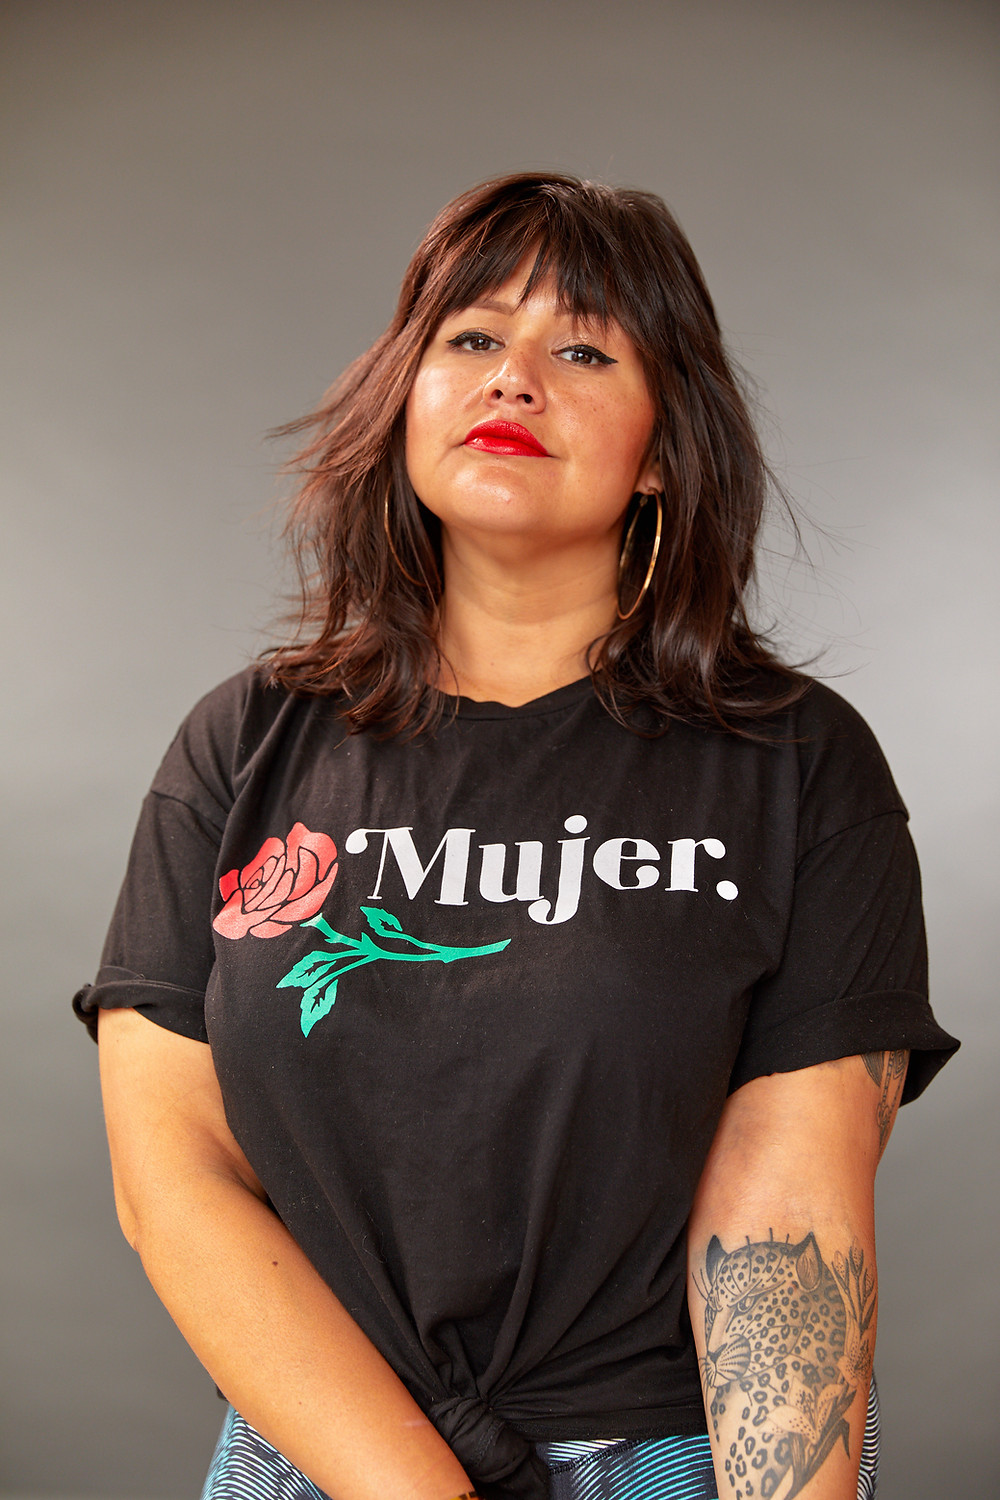 Katie stands wearing a black t-shirt that says Mujer